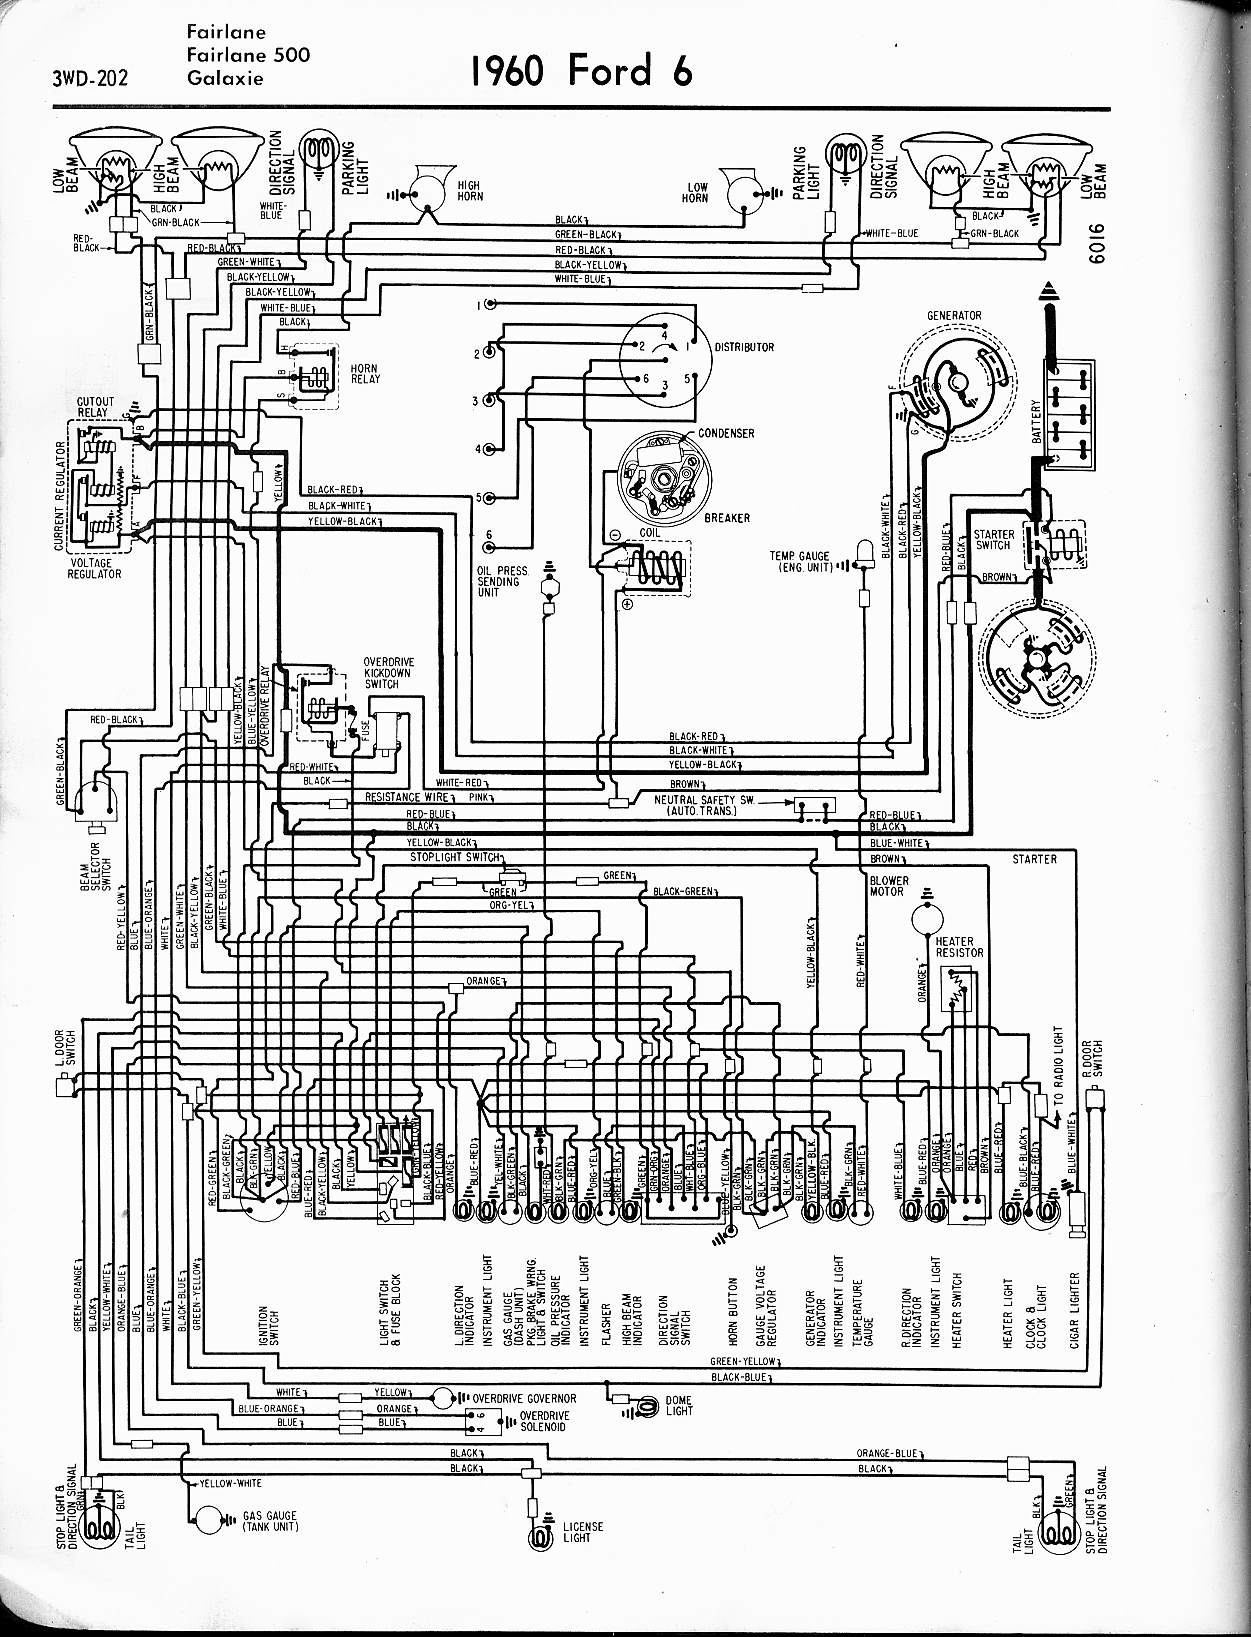 1970 Ford F100 Truck Wiring Diagram For Headlight Basic Guide Bronco Alternator 57 65 Diagrams Rh Oldcarmanualproject Com 1979